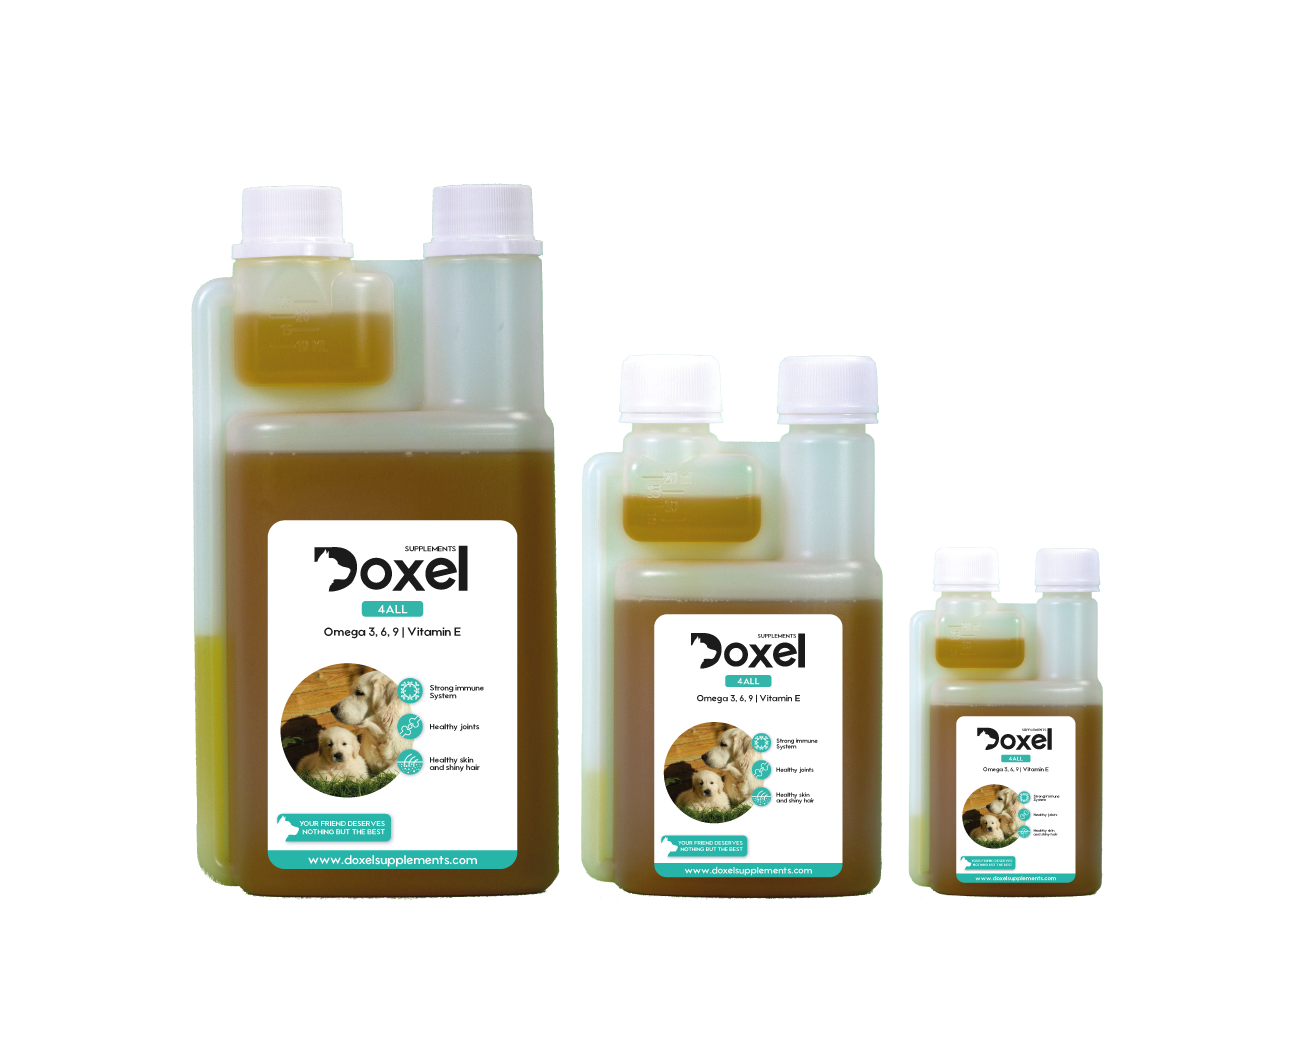 DOXEL 4 ALL 250ml